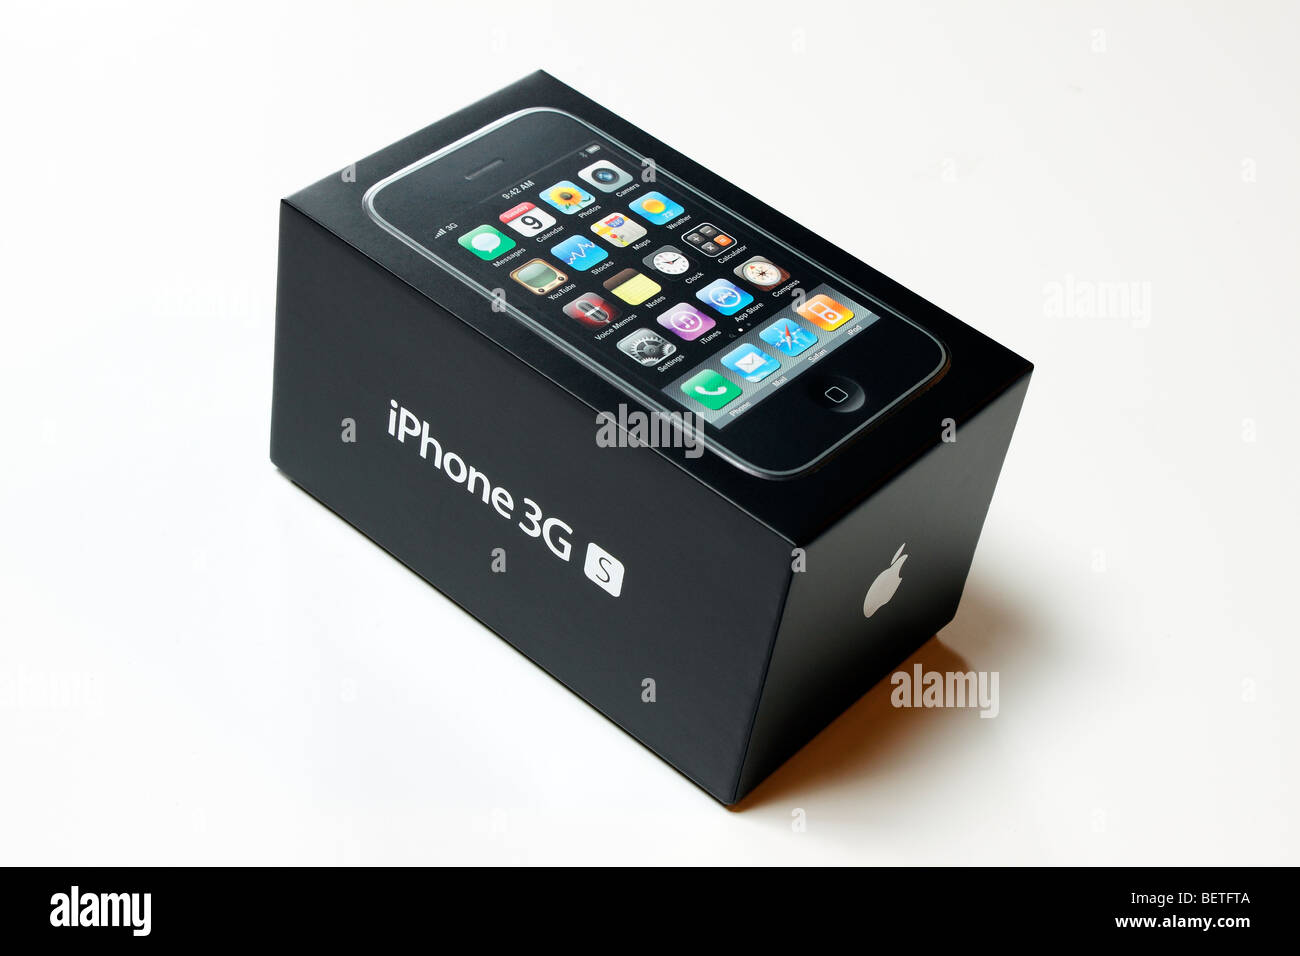 The Box Of The New IPhone 3G S Stock Photo Royalty Free Image